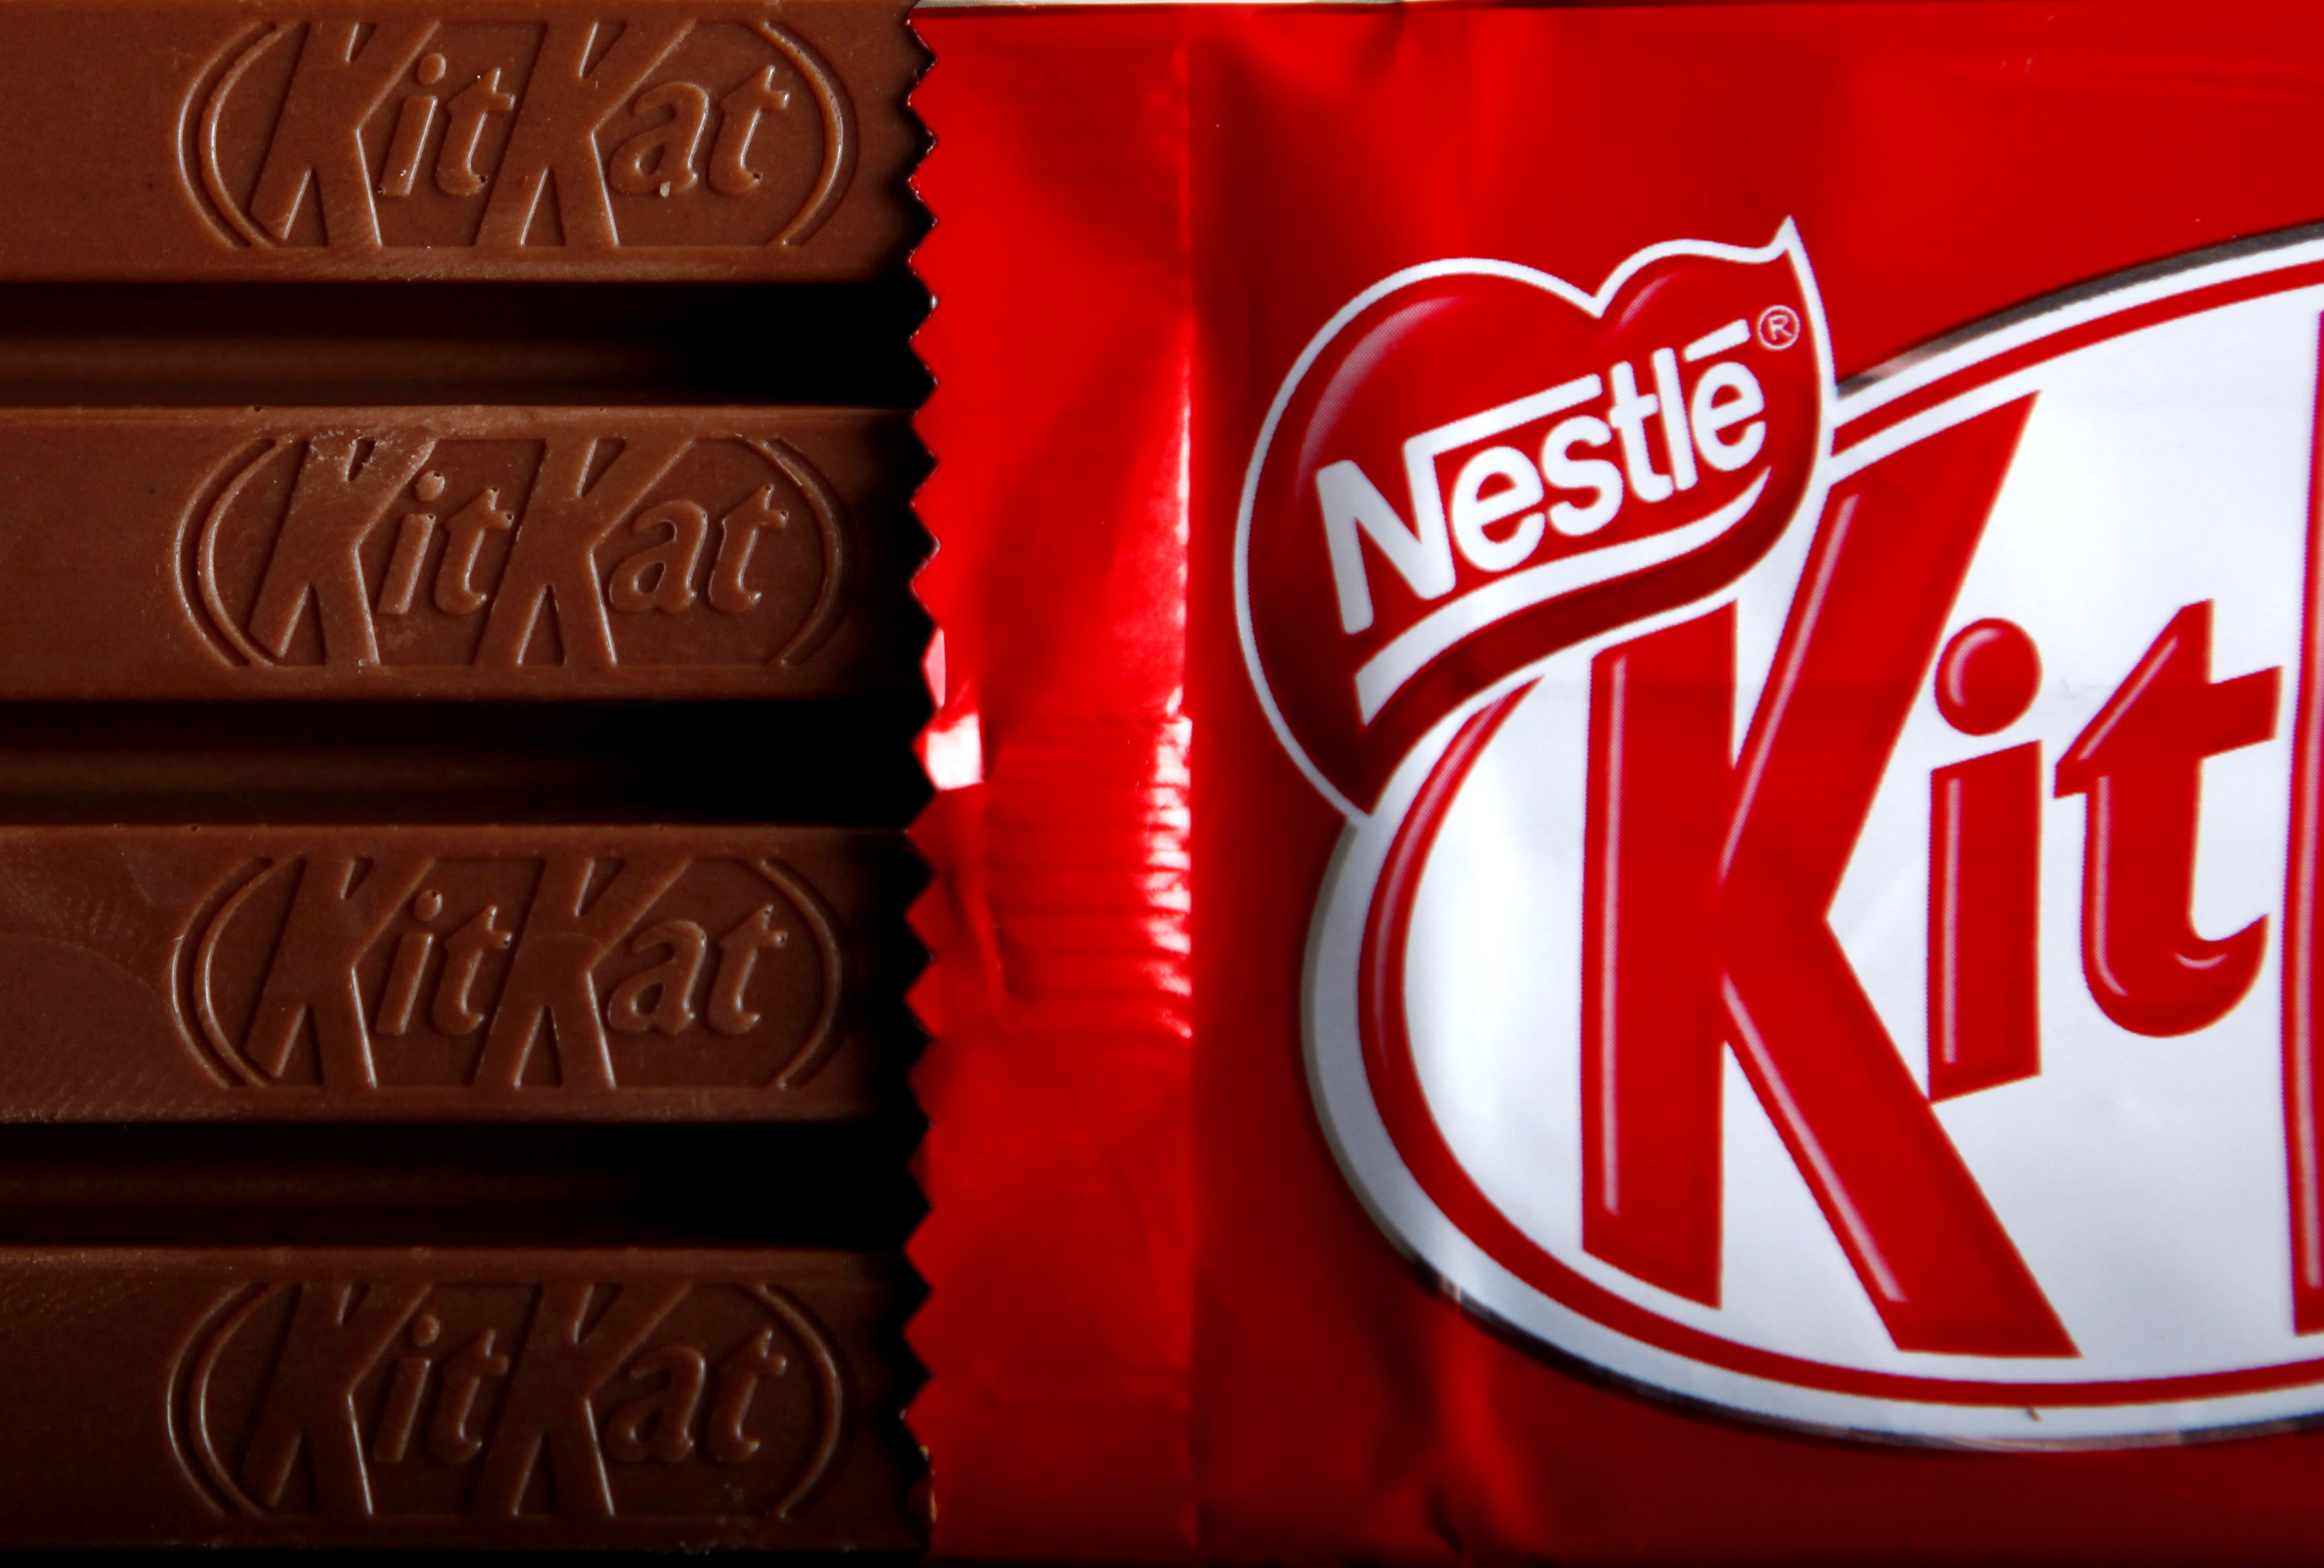 Bars of original KitKat chocolate, produced by Nestle SA, and without the  Fairtrade  logo sit arranged for a photograph in London, U.K., on Monday, Dec.7, 2009. Nestle SA, the world's biggest food company, will start certifying some KitKat bars in the U.K. and Ireland as Fairtrade, following Cadbury Plc, which started producing mass-market Fairtrade chocolate this year.